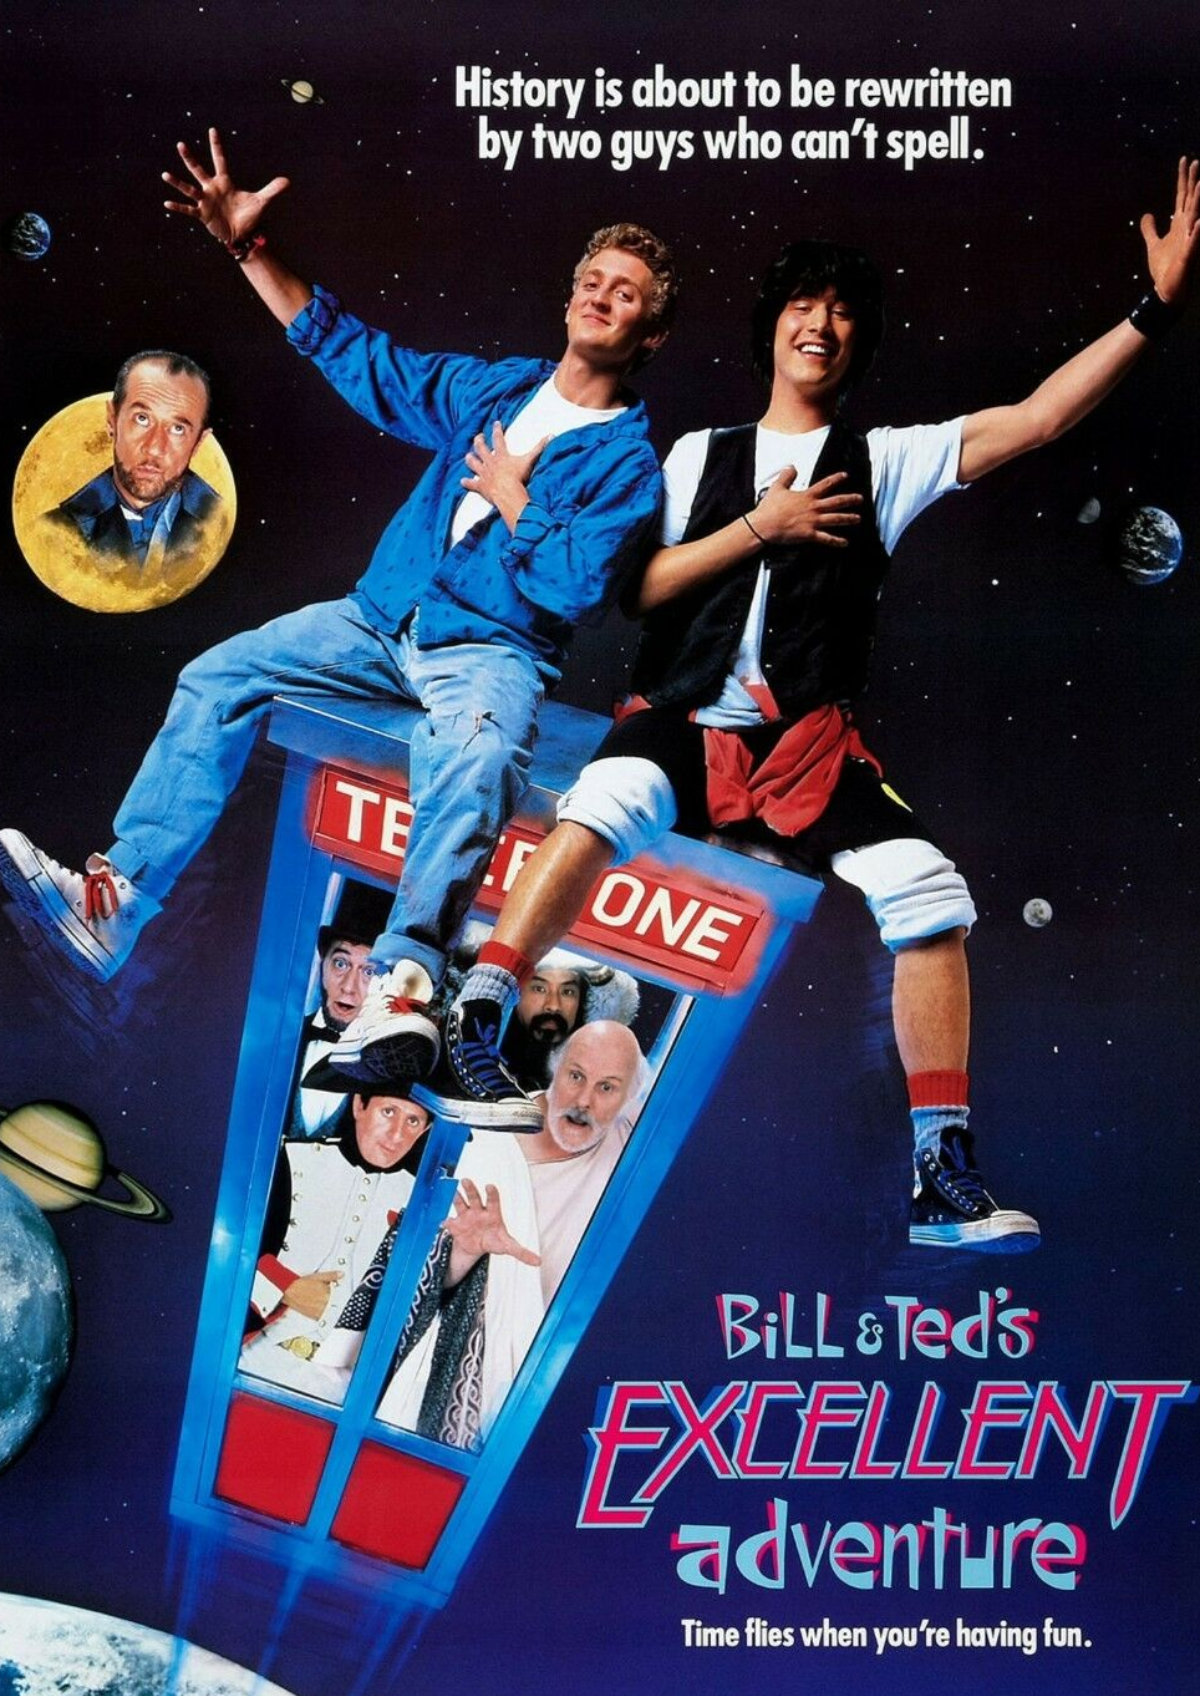 'Bill And Ted's Excellent Adventure' movie poster